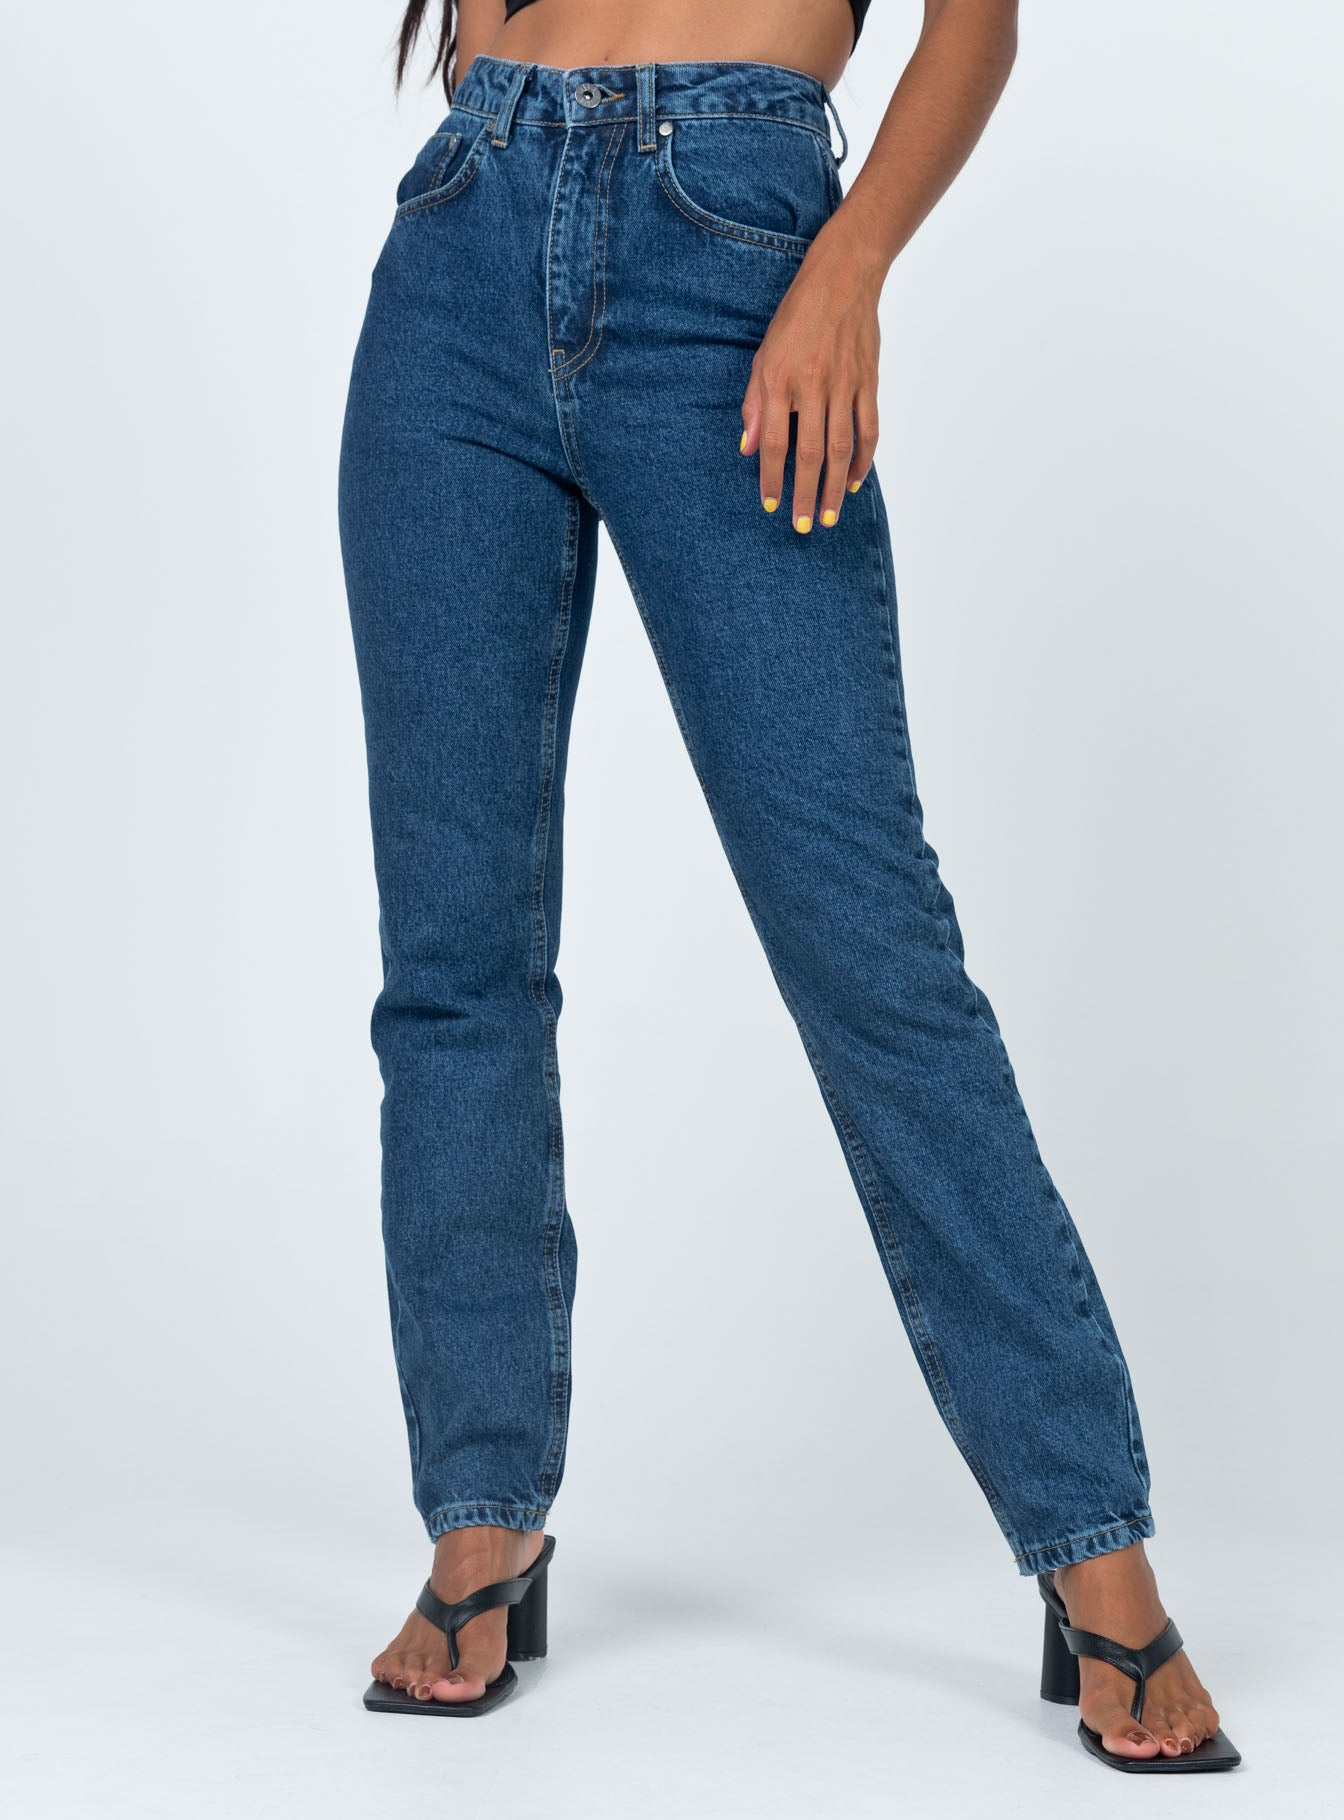 Ragged Priest Cougar Jean Indigo Denim